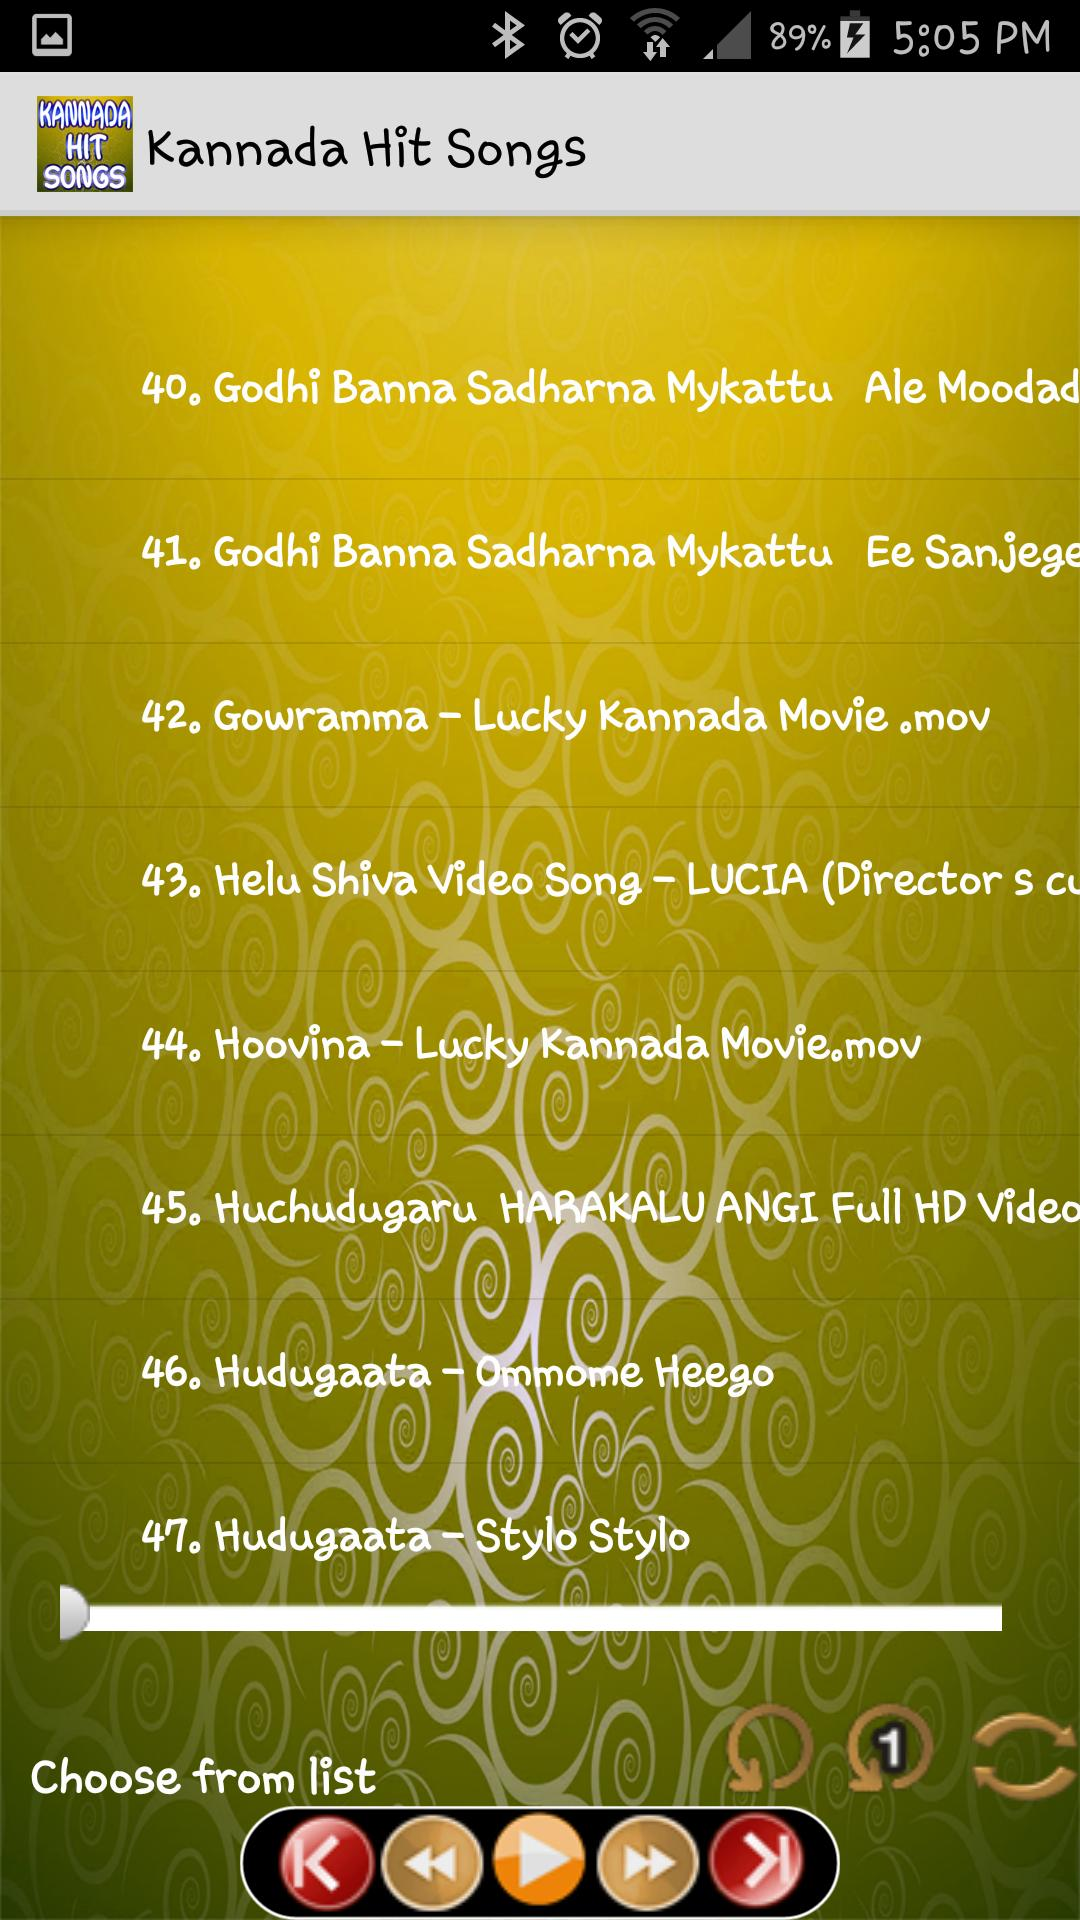 Kannada Hit Songs for Android - APK Download